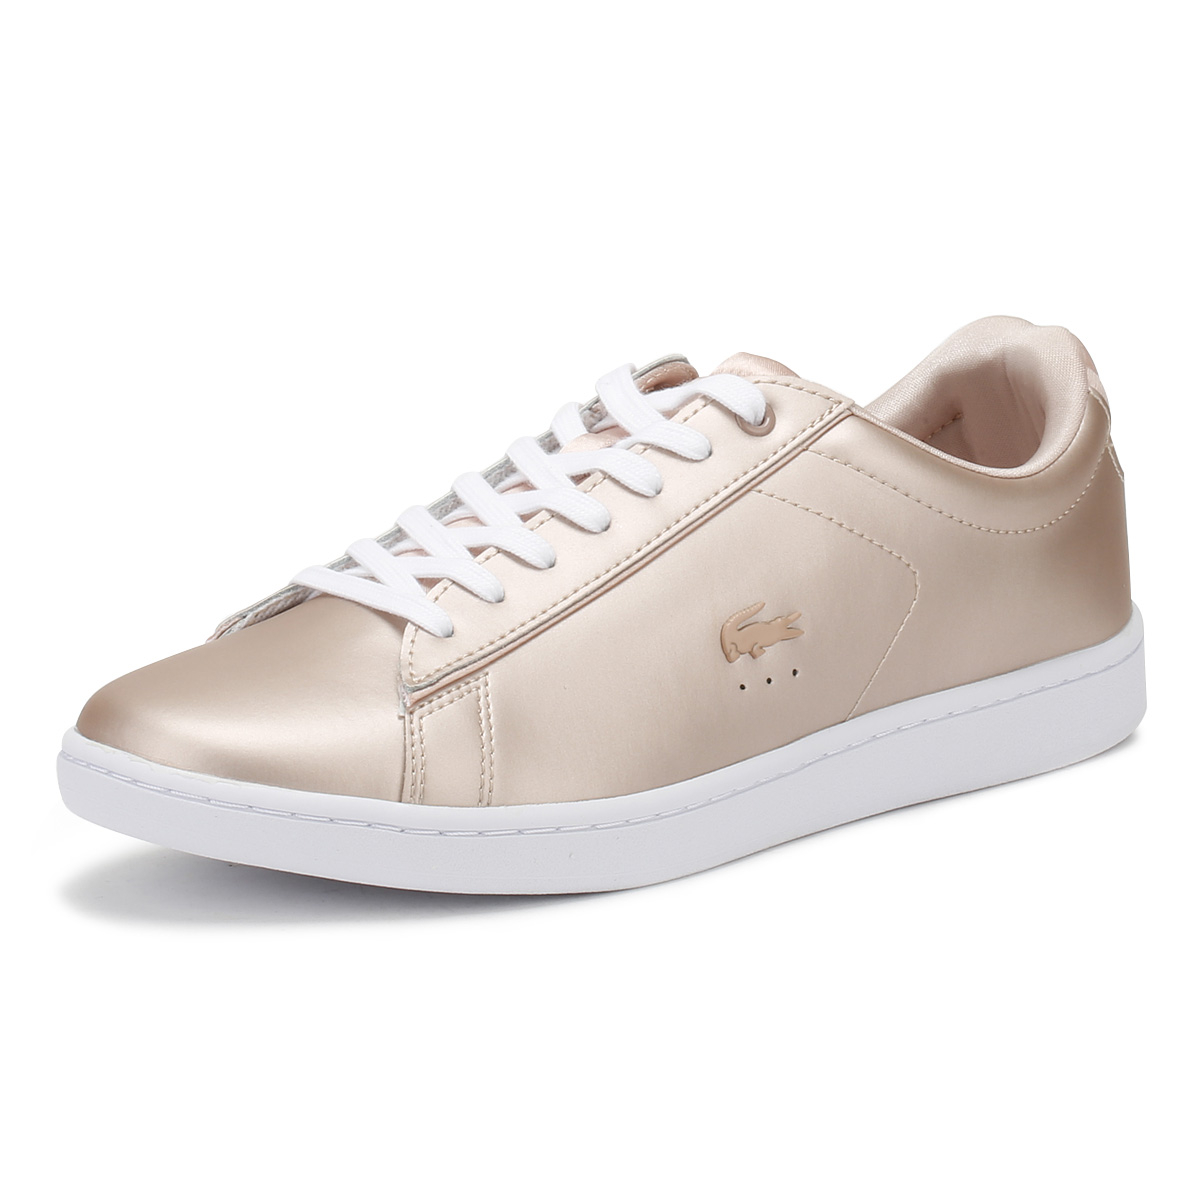 5a44bdadb Details about Lacoste Womens Trainers Natural Tan   White Carnaby EVO 118 7  Casual Shoes